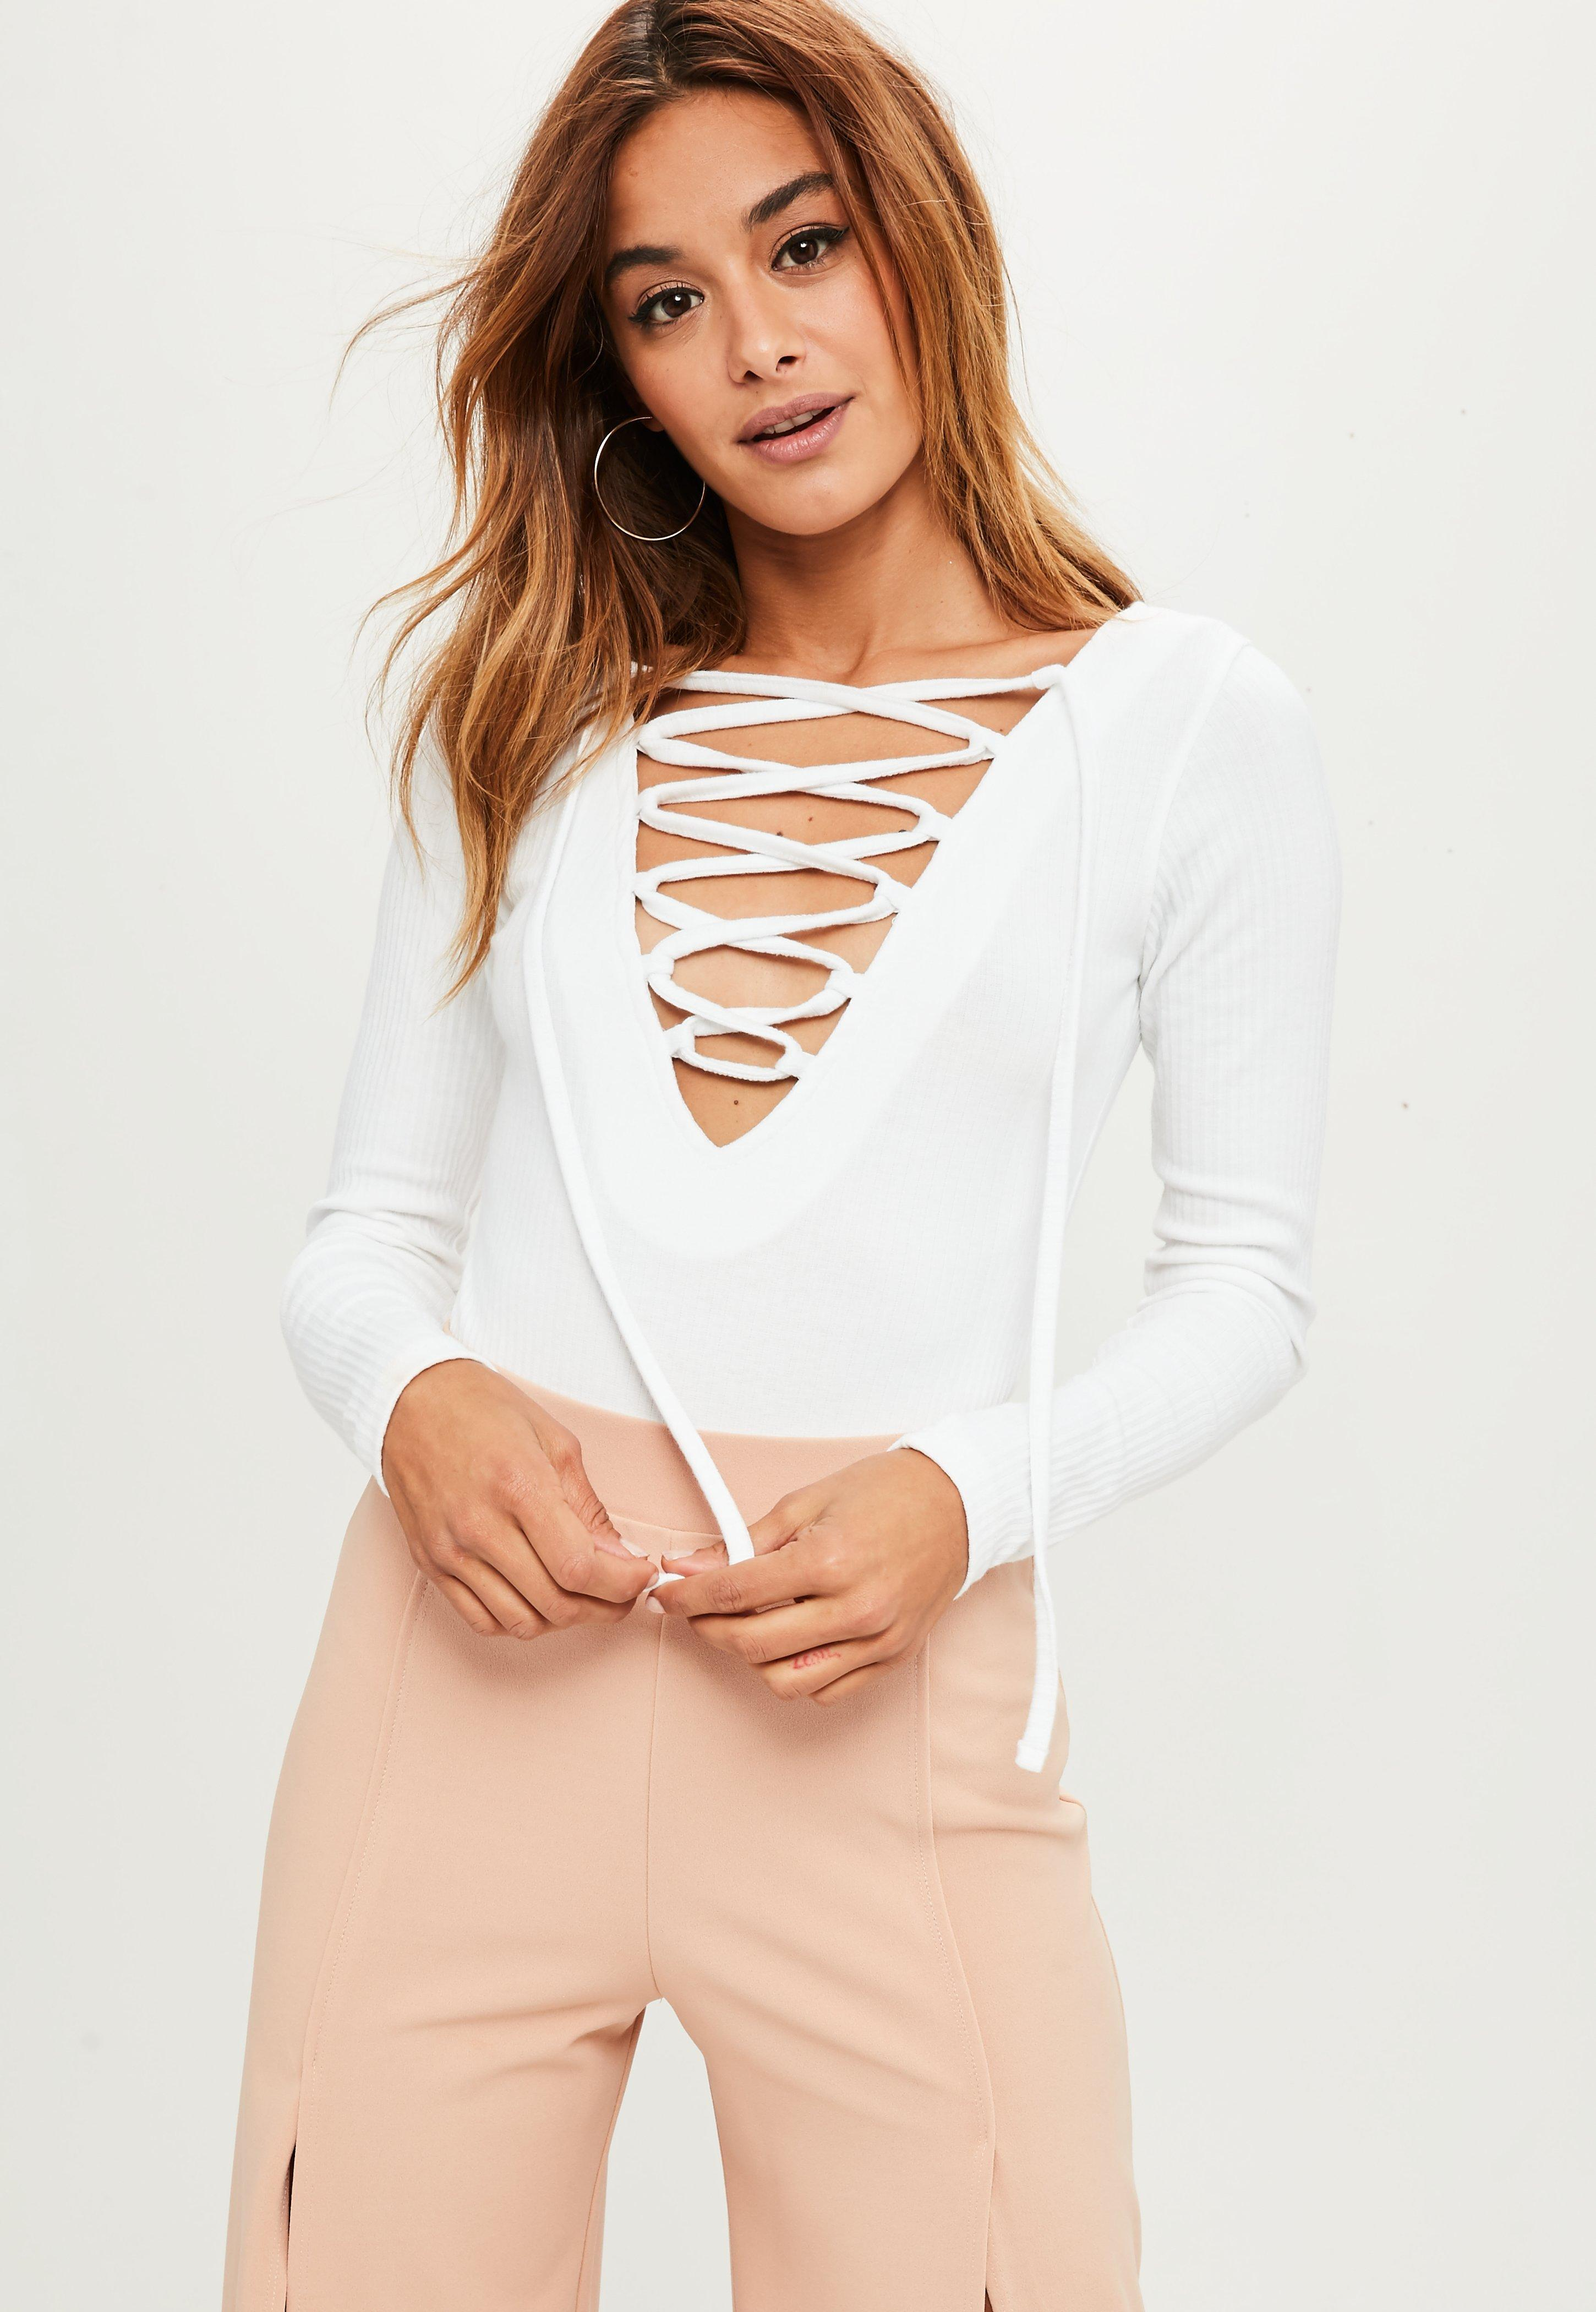 Lyst - Missguided Tall White Long Sleeve Lace Up Ribbed Bodysuit in ... ff8ecd758